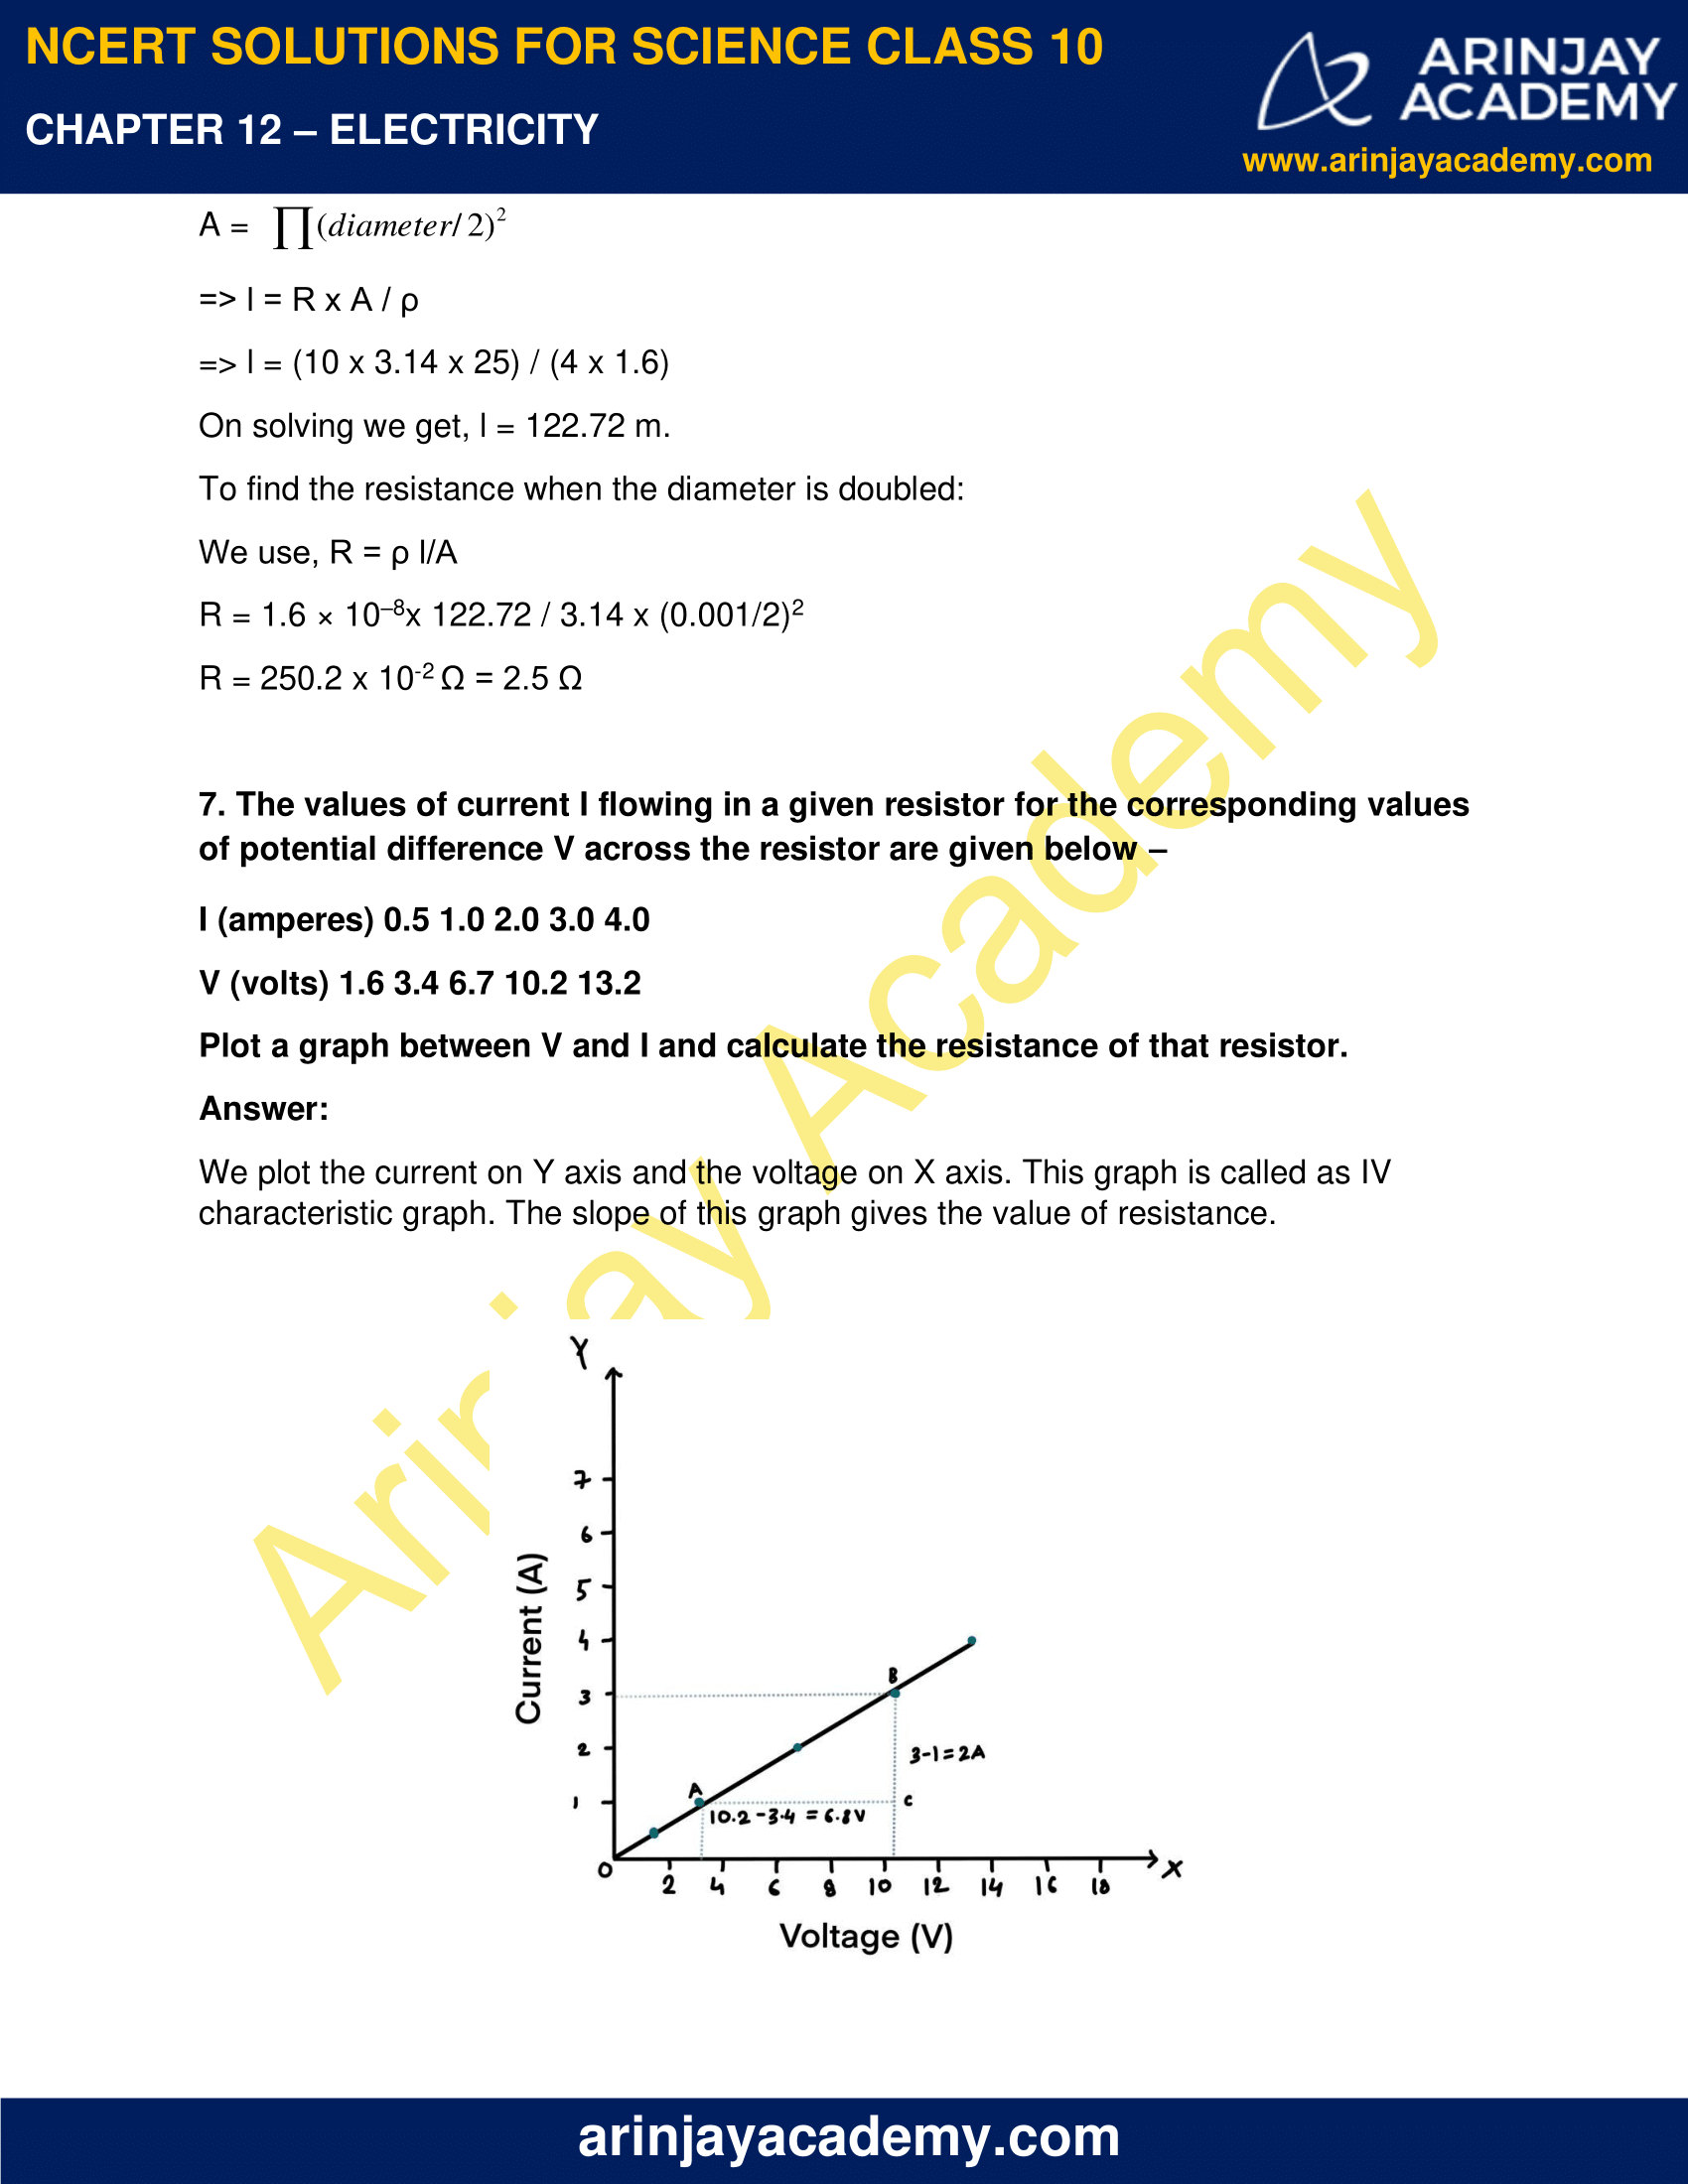 NCERT Solutions for Class 10 Science Chapter 12 Electricity image 15